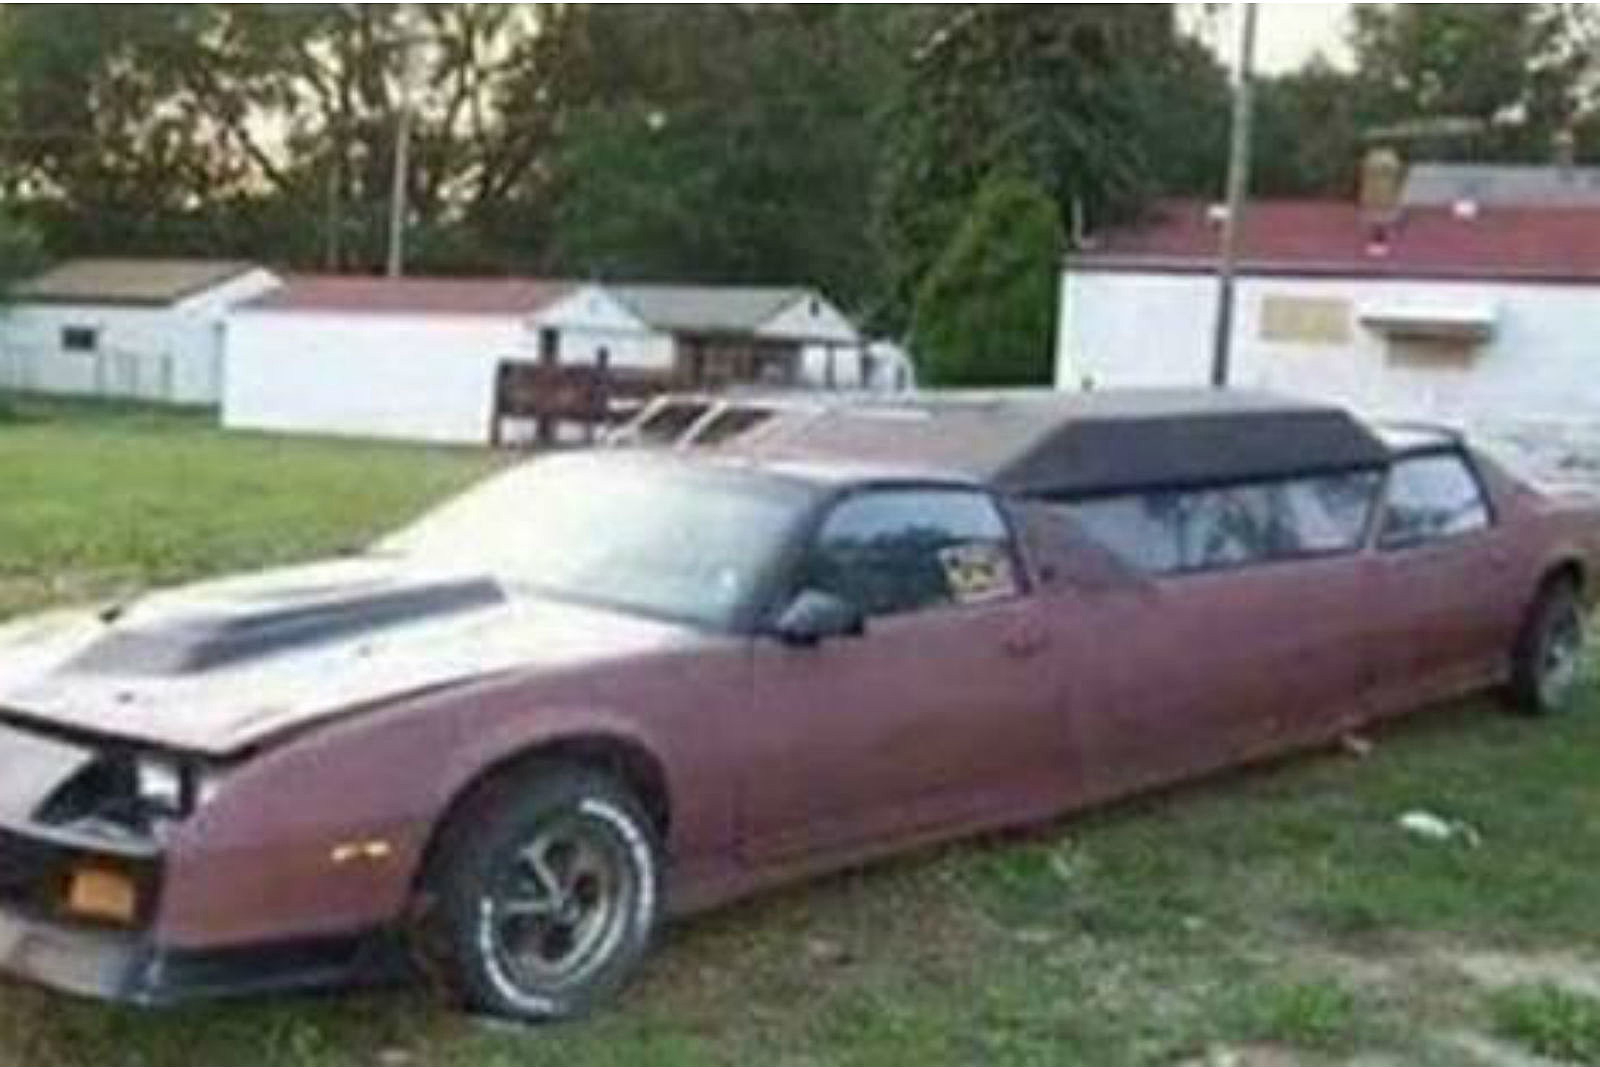 This Maine Craigslist Ad For An 86 Camaro Limo Just Can T Be Real